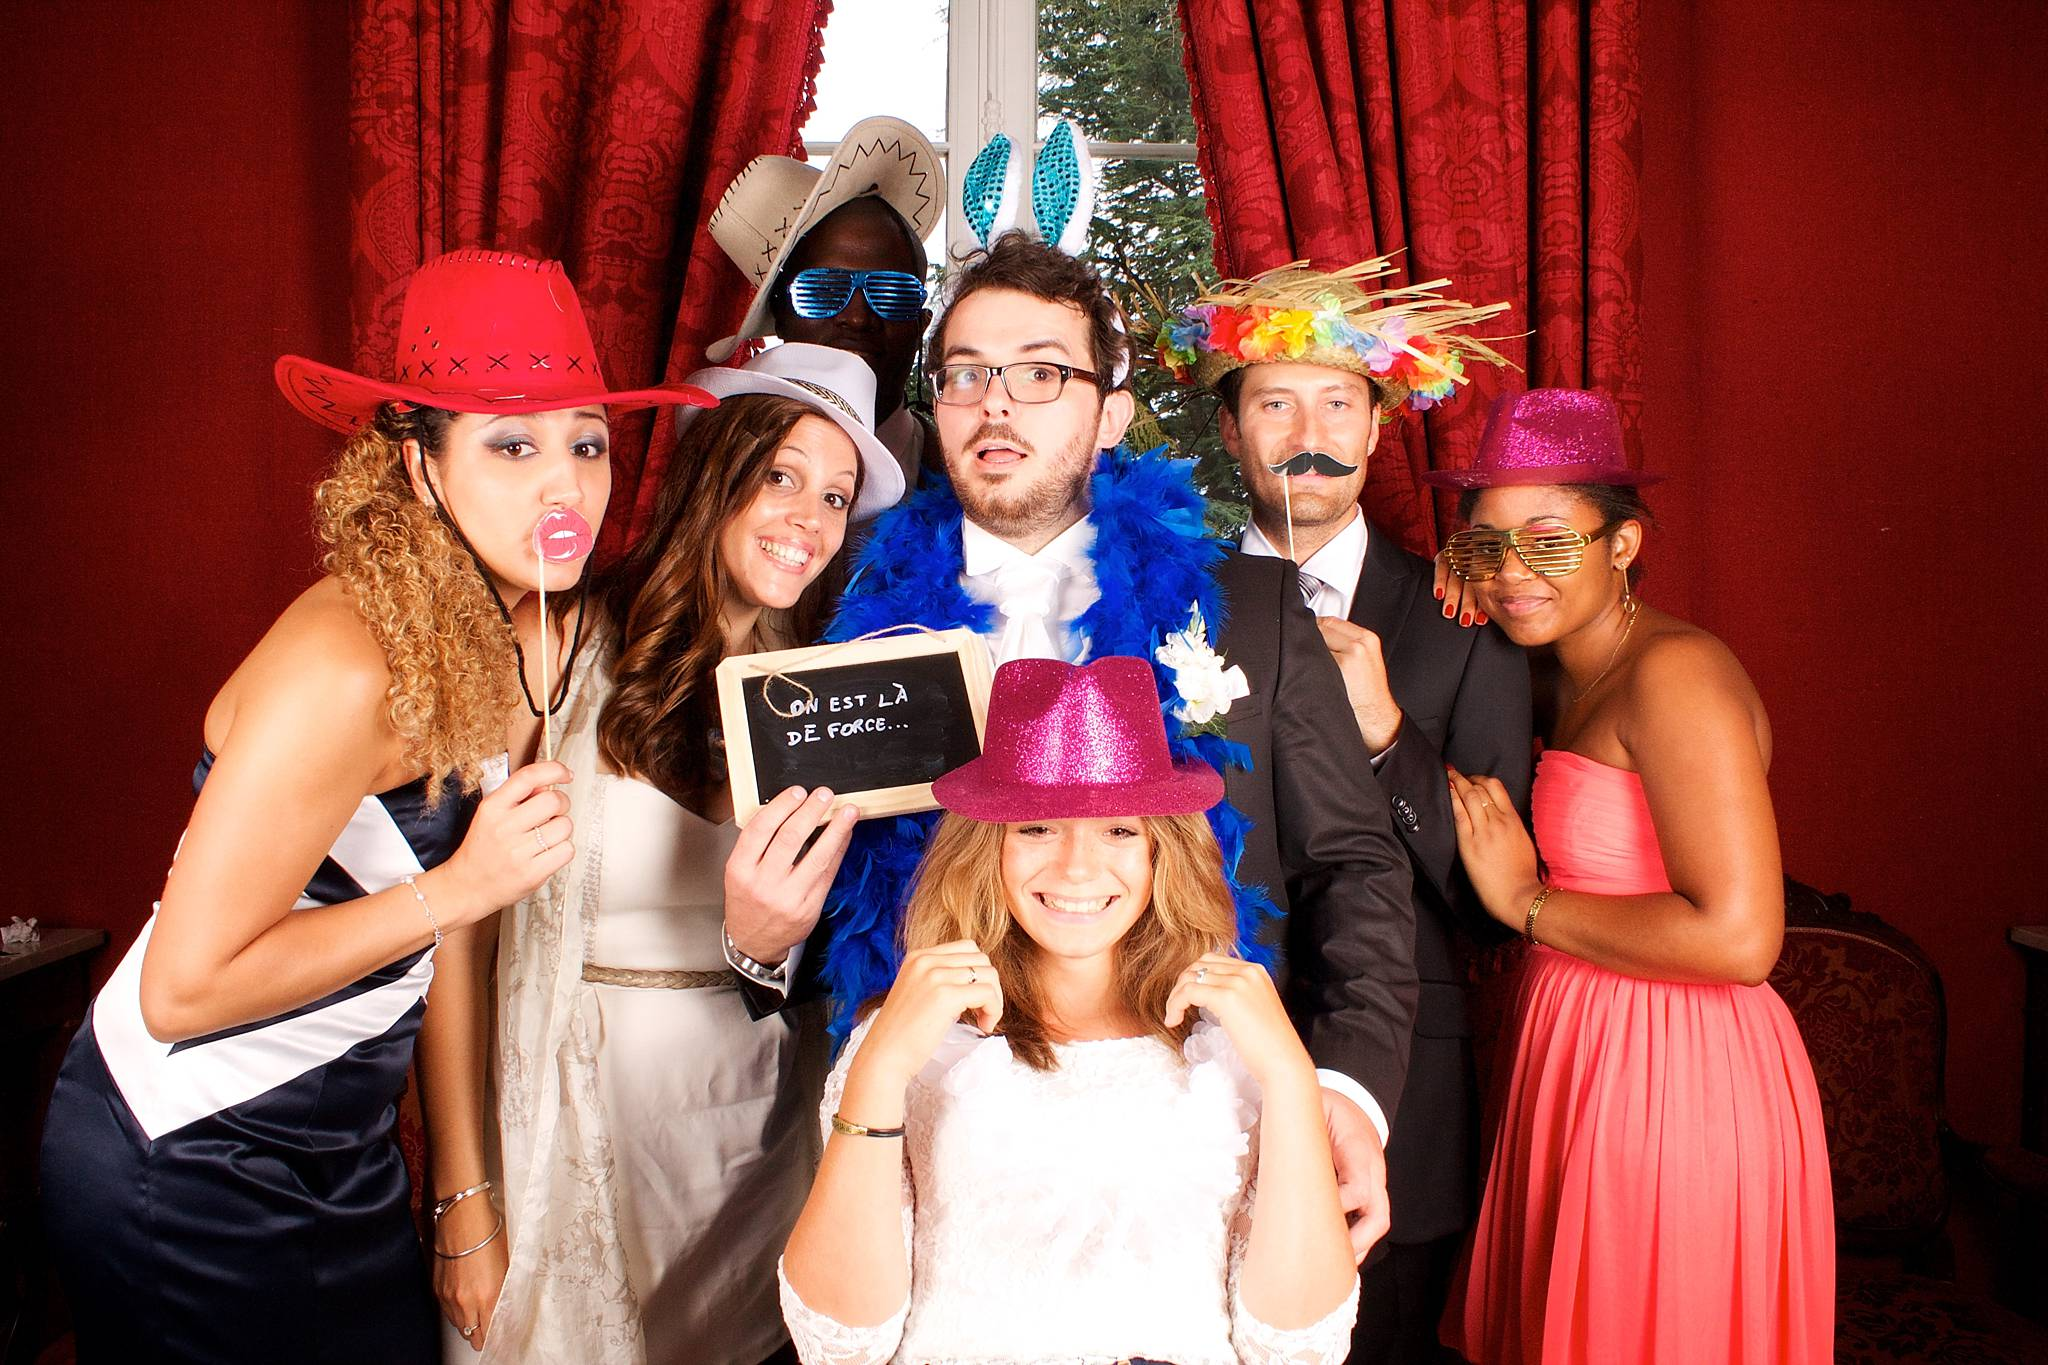 03_photobooth-mariage-bordeaux-gironde-dordogne-charentes-alexandre-roschewitz-photographies_2048px